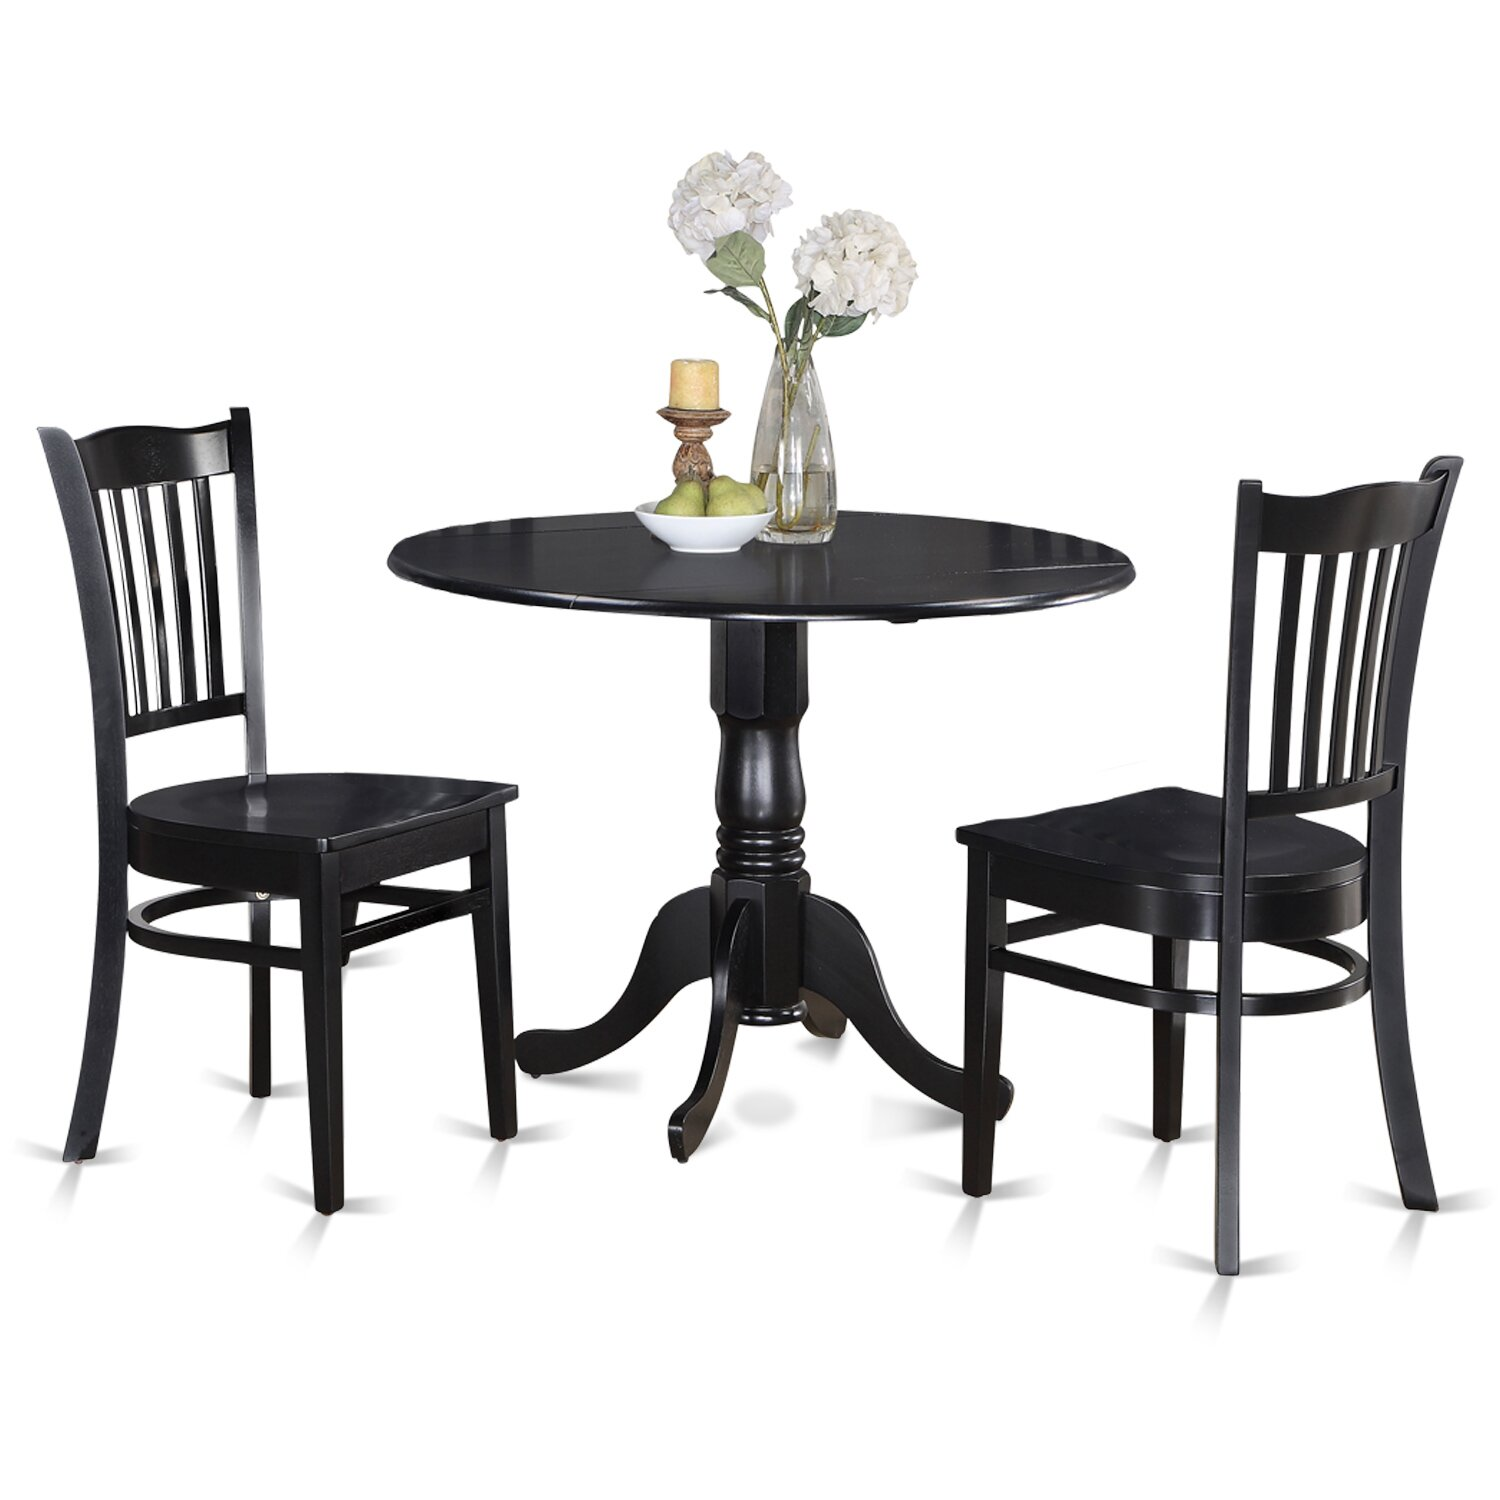 Wooden importers dublin 3 piece dining set reviews wayfair for Small dining set for 2